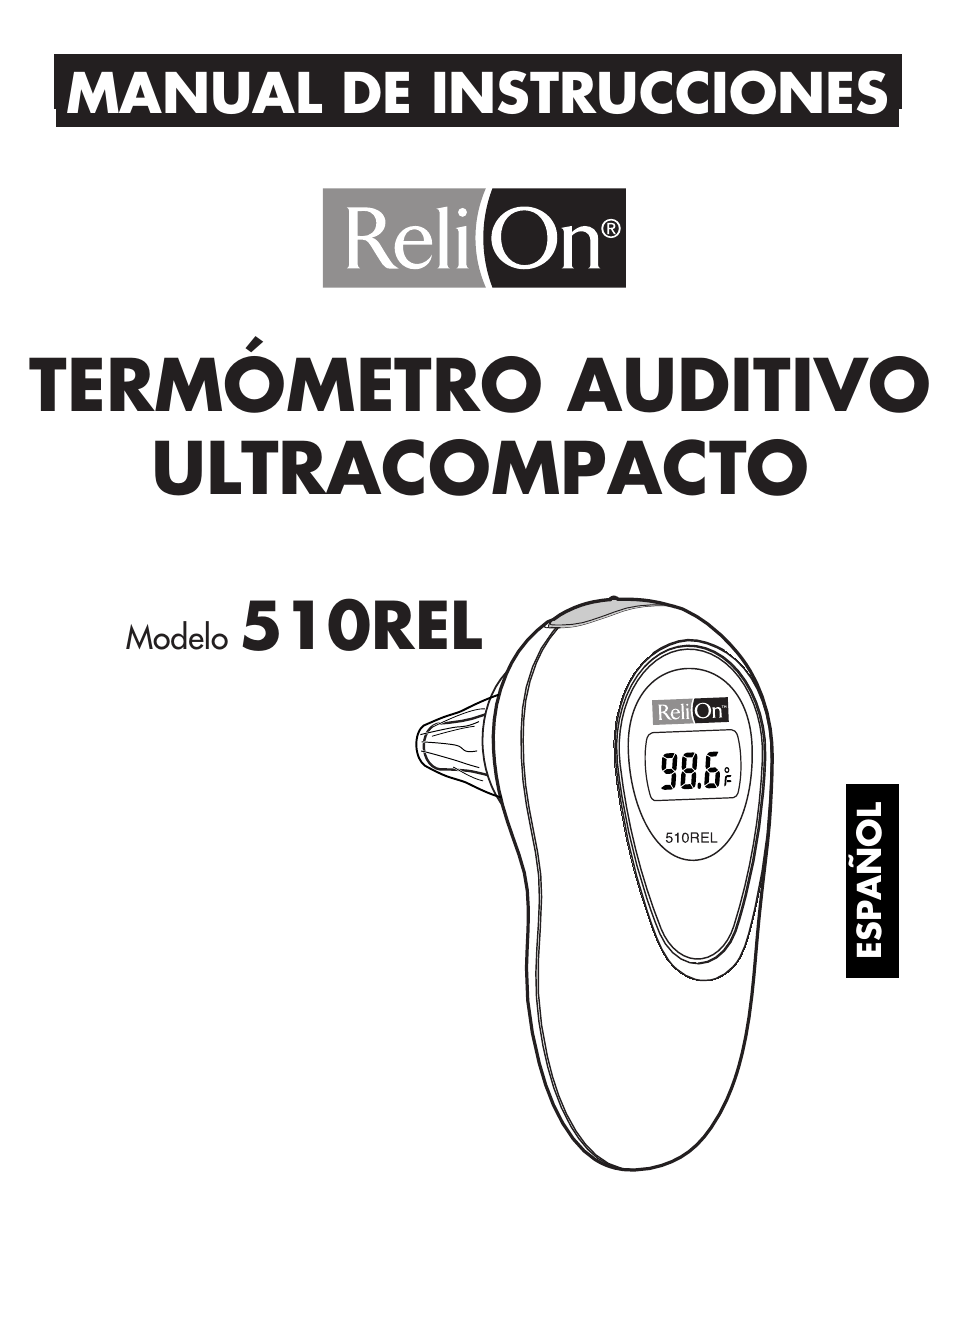 Termómetro auditivo ultracompacto, 510rel, Manual de